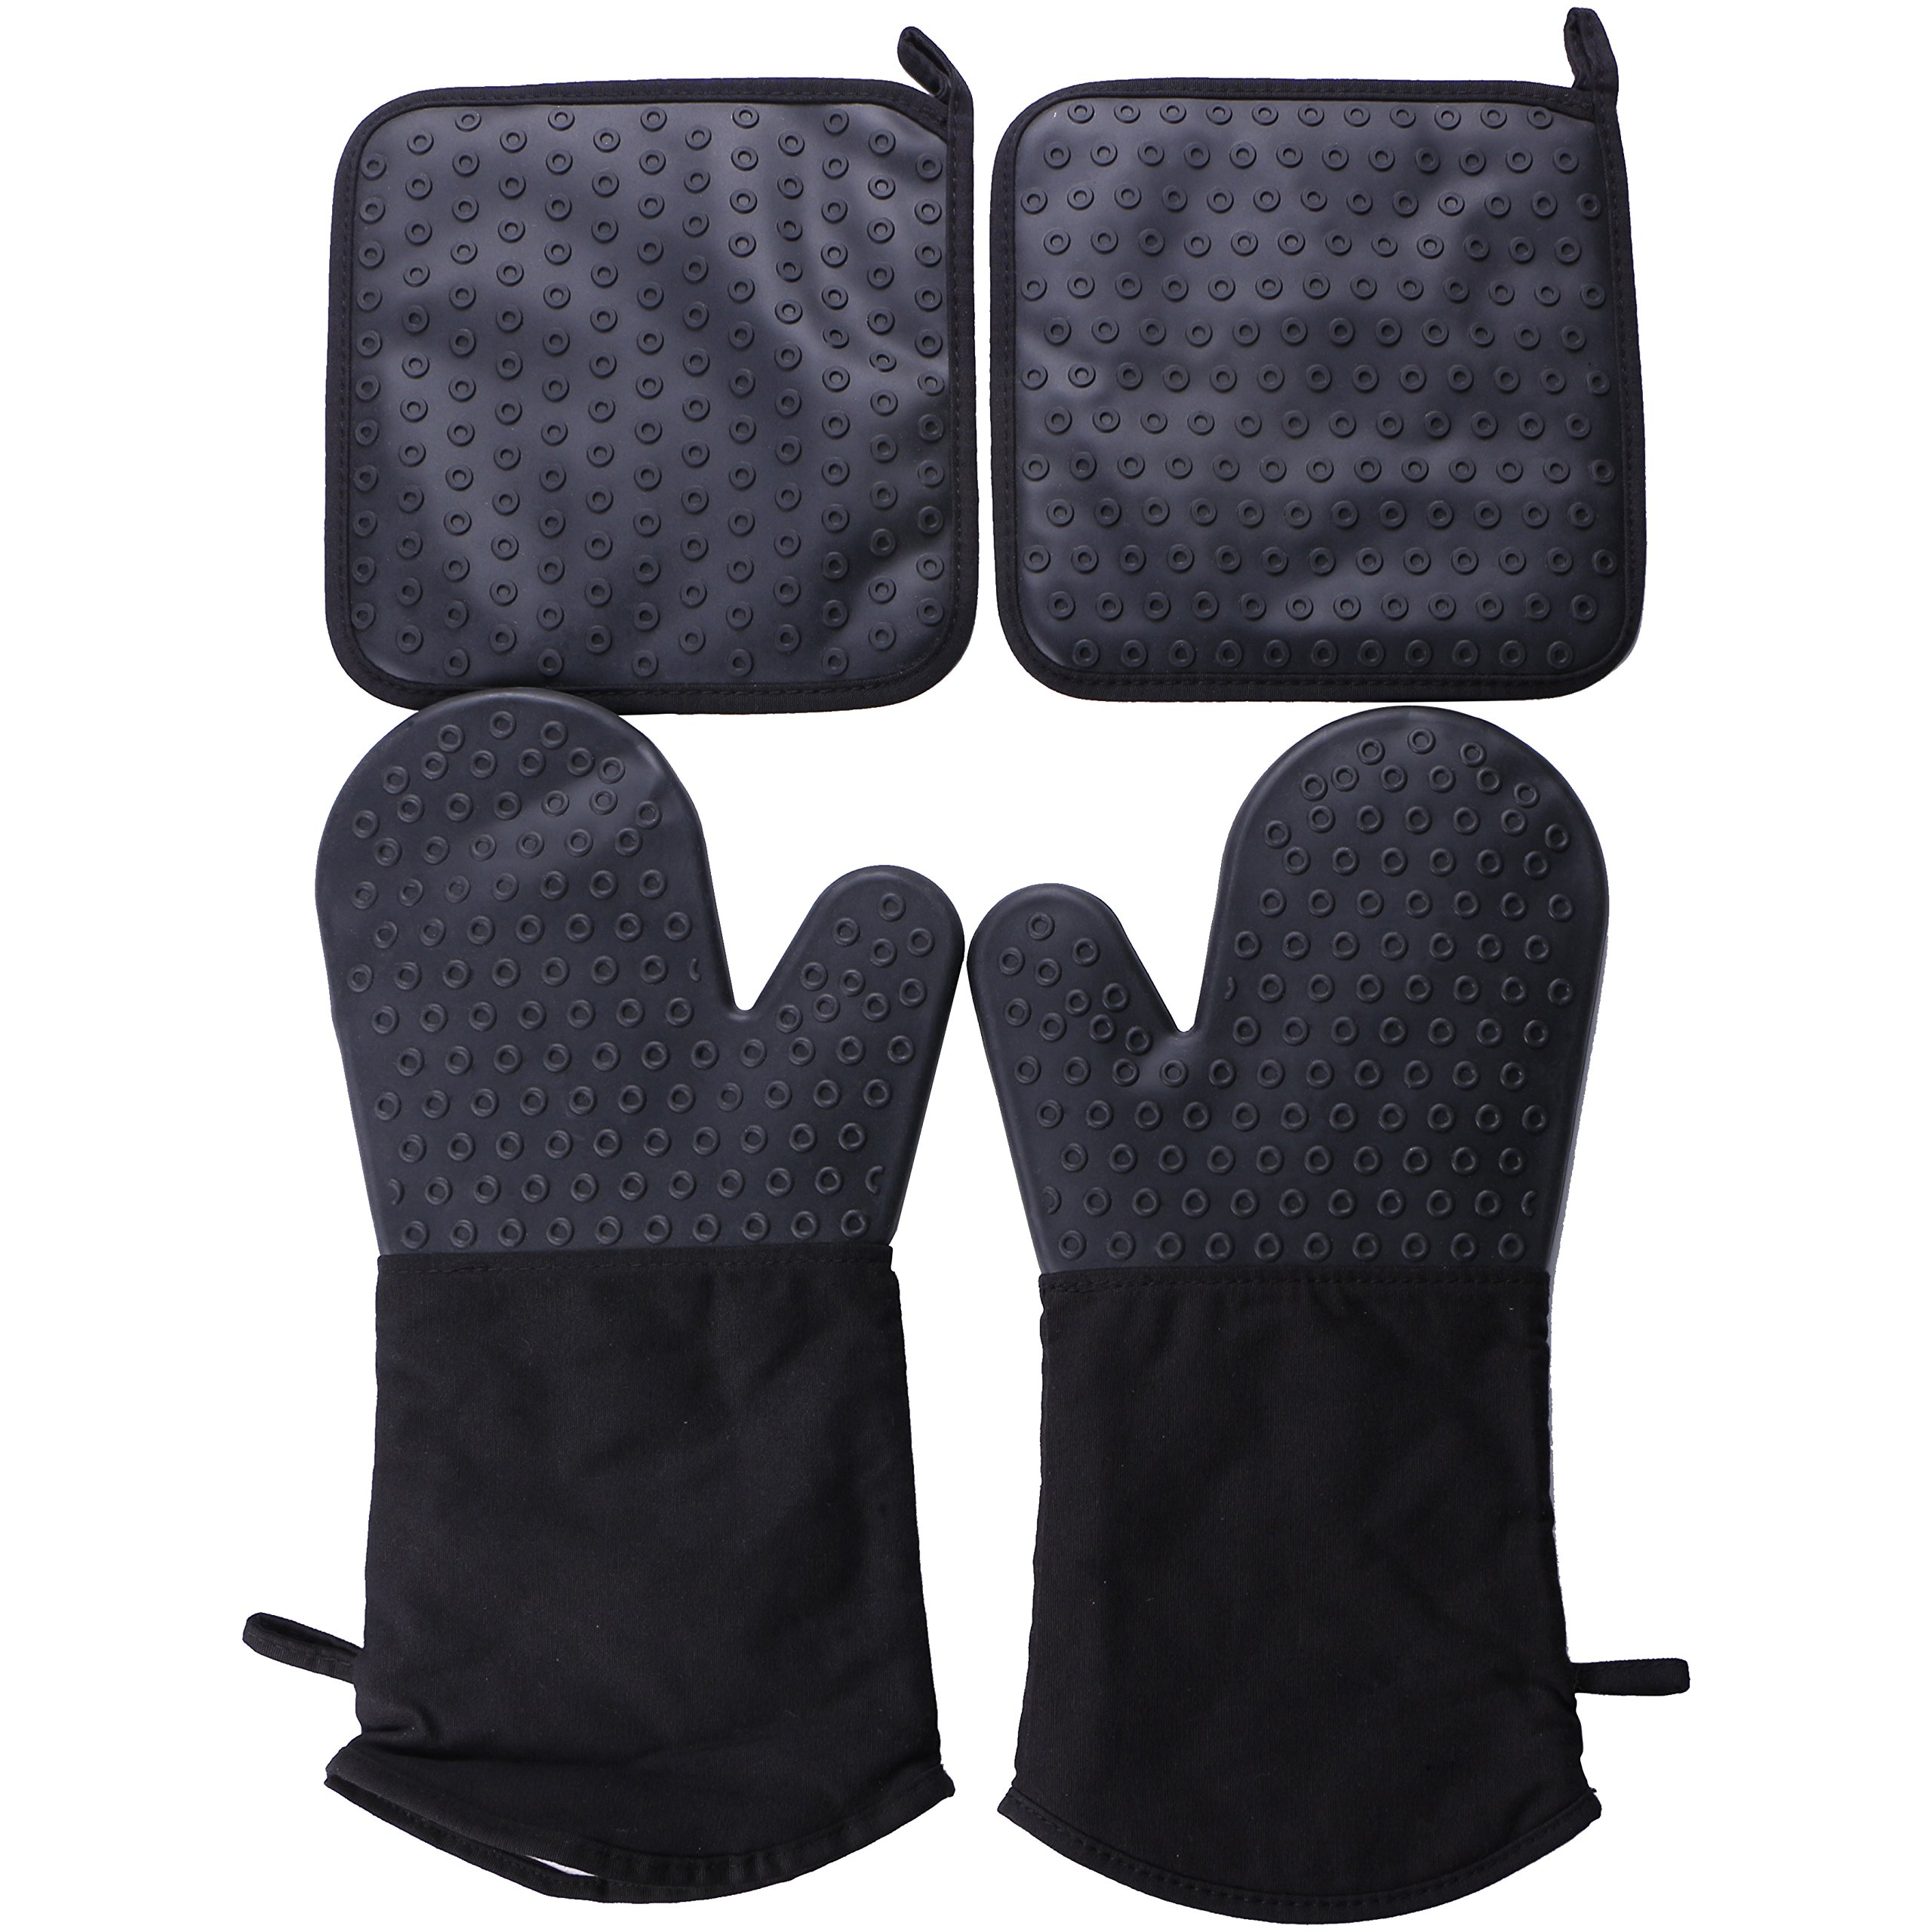 Webake 2pcs Silicone Oven Mitts Gloves and 2pcs Oven Pot Holders Set for Finger Hand Wrist Protection